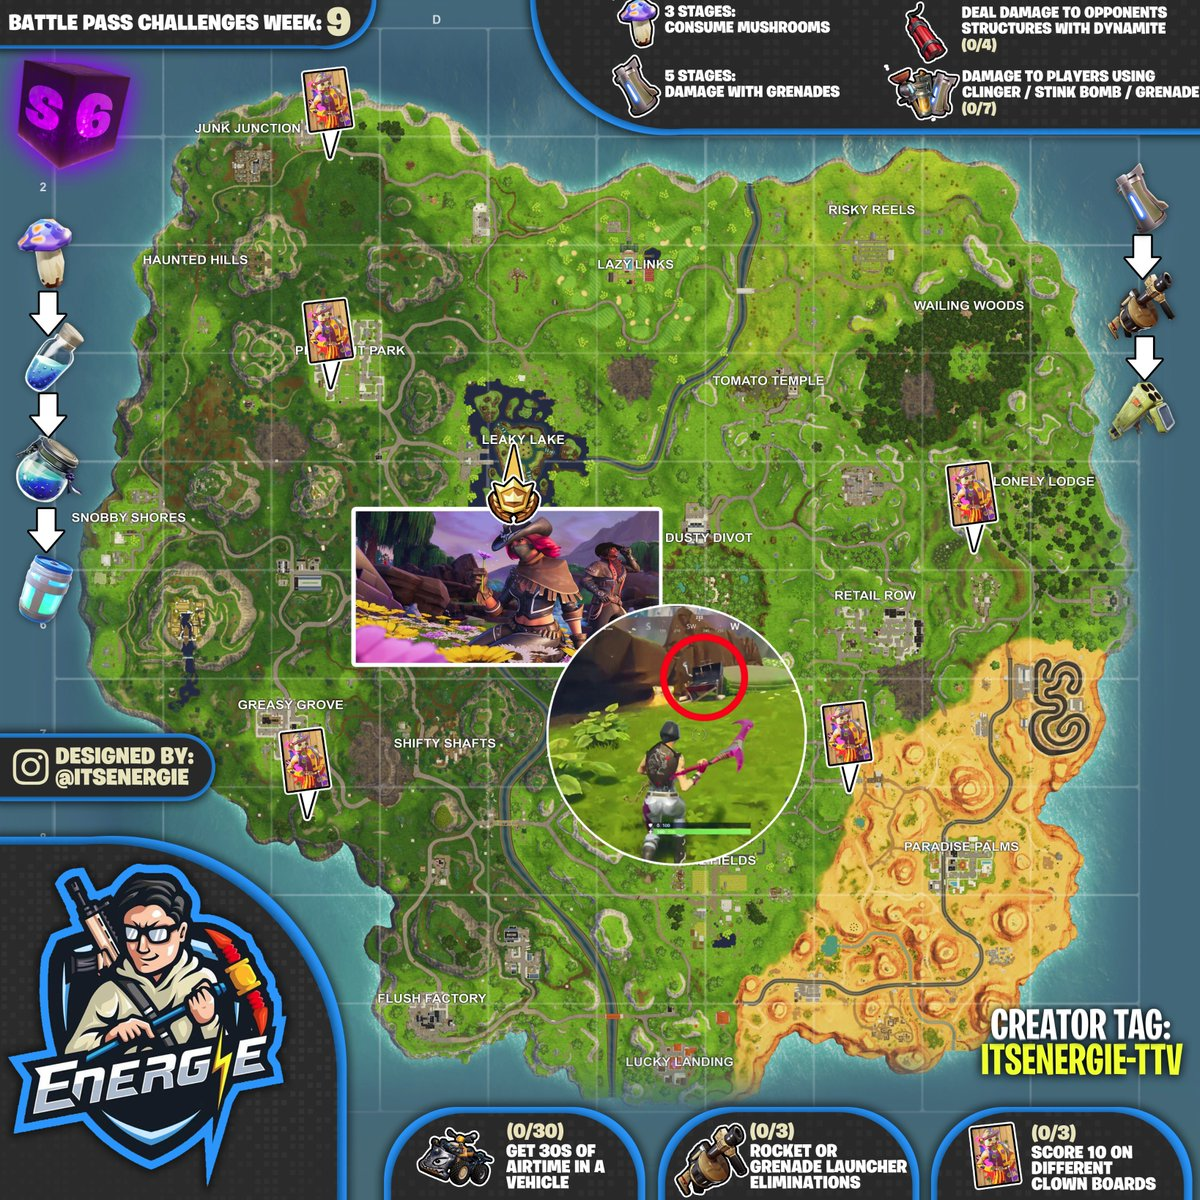 Season 6 Week 9 Fortnite Challenges Cheat Sheet Map Fortnite Insider